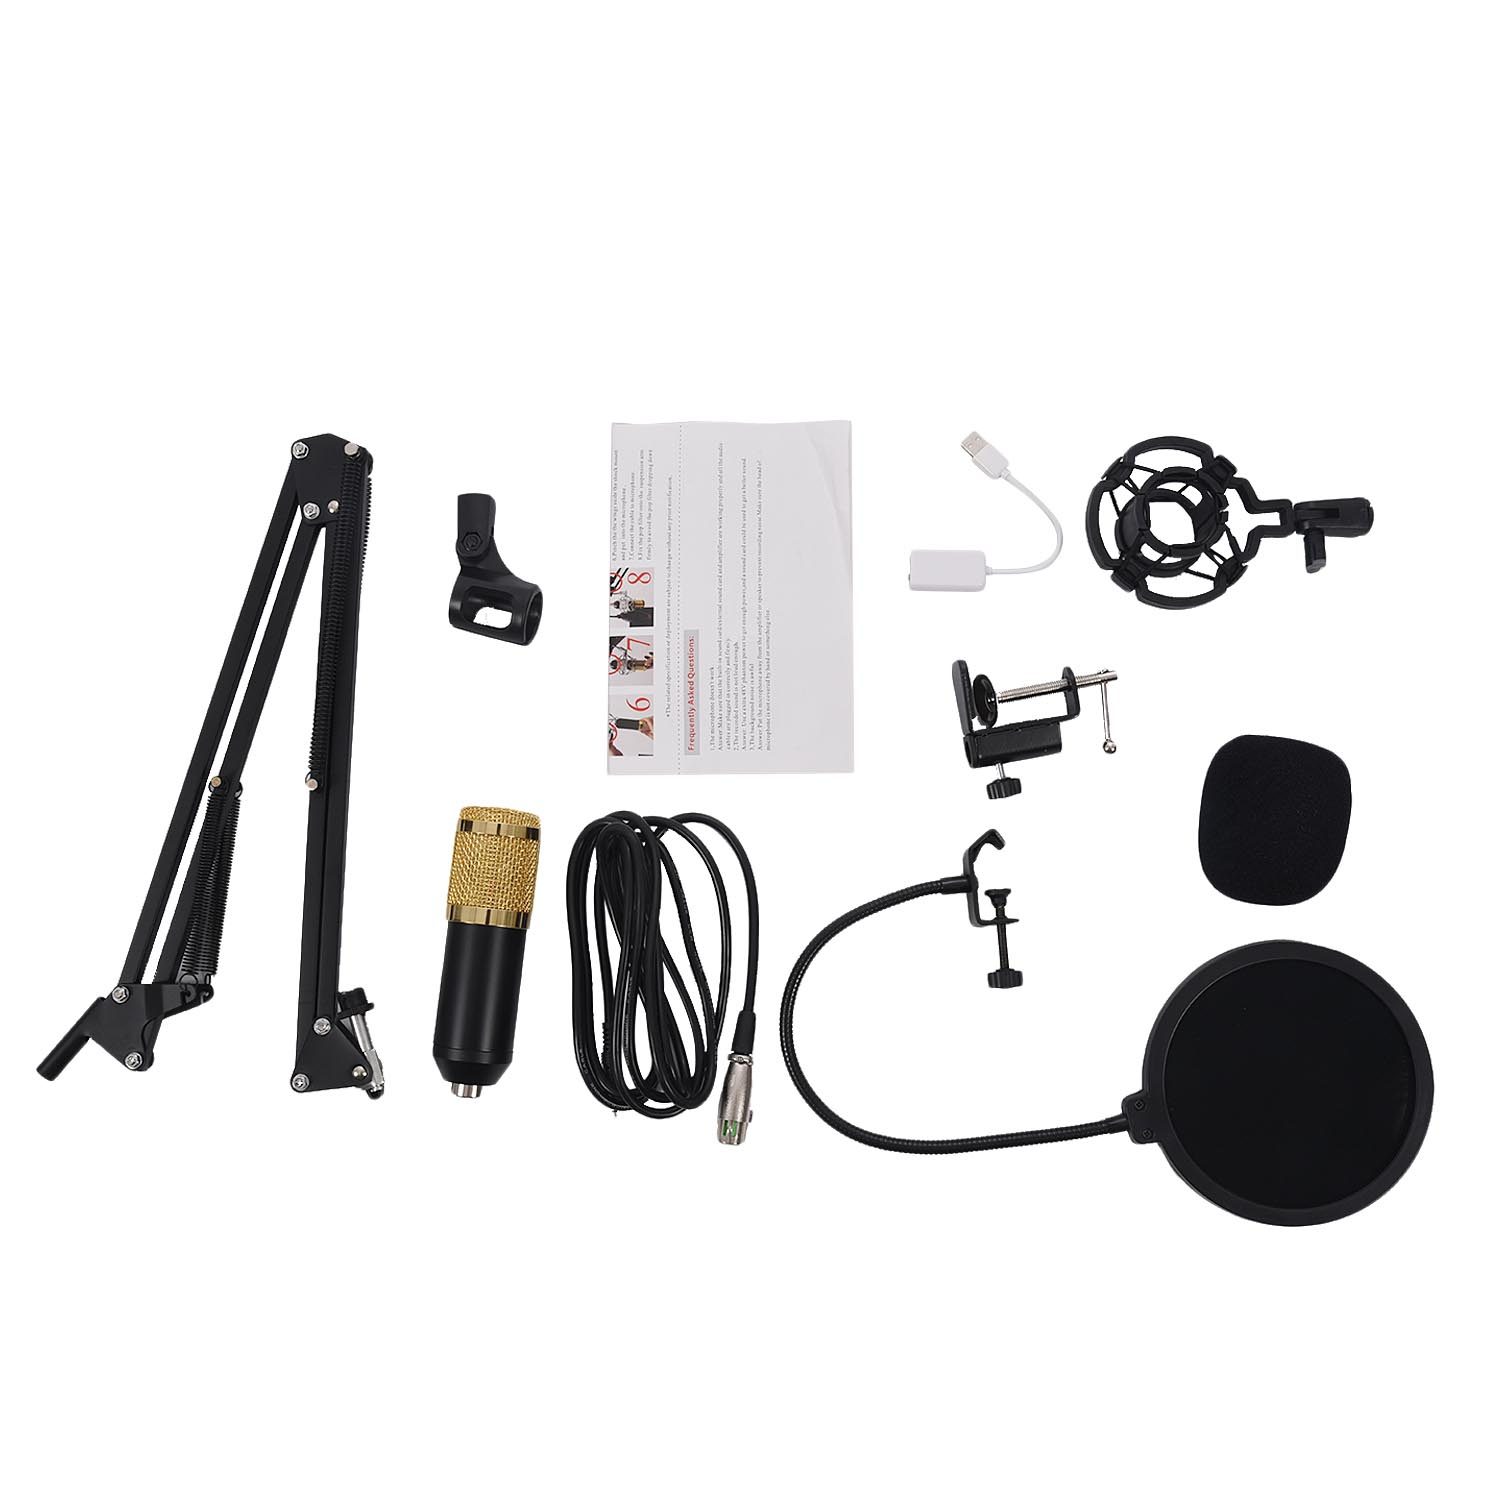 BM800 Condenser Microphone Kit Studio Suspension Boom Scissor Arm Sound Card Wire TV Karaoke Microphone Mic W/Stand For Computer-in Microphones from Consumer Electronics on Aliexpress.com | Alibaba Group